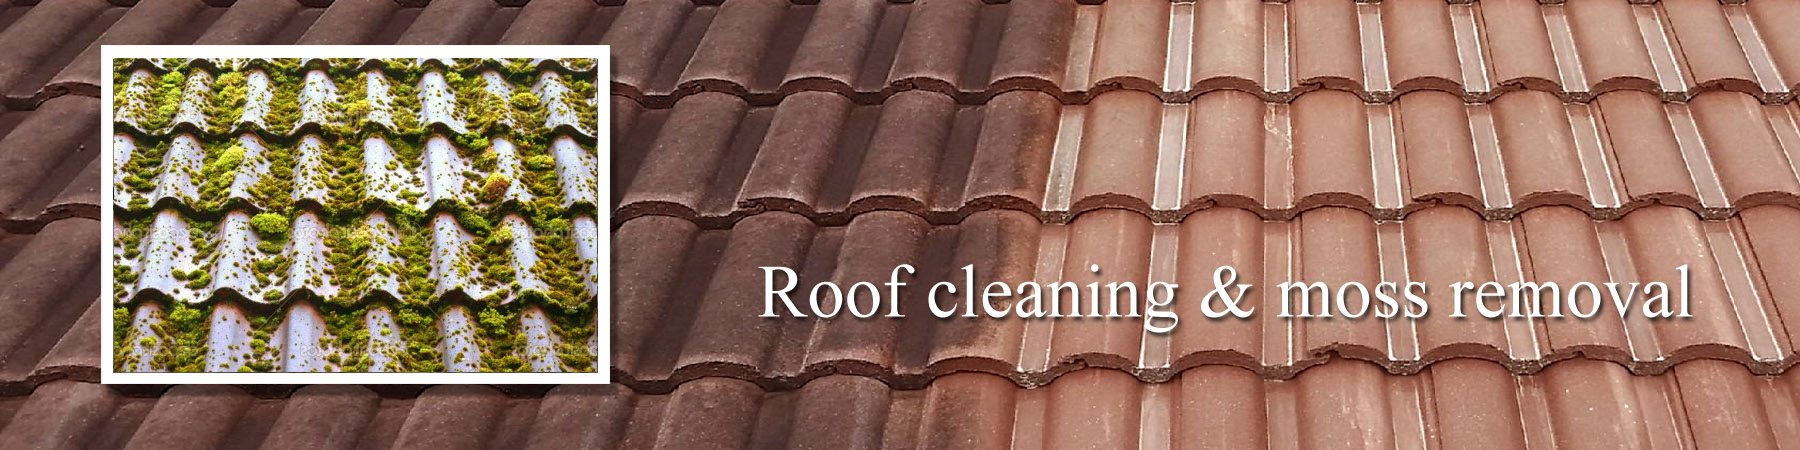 J.R. Roof Cleaning Capel roof moss removal repairs & coating J R Cleaning